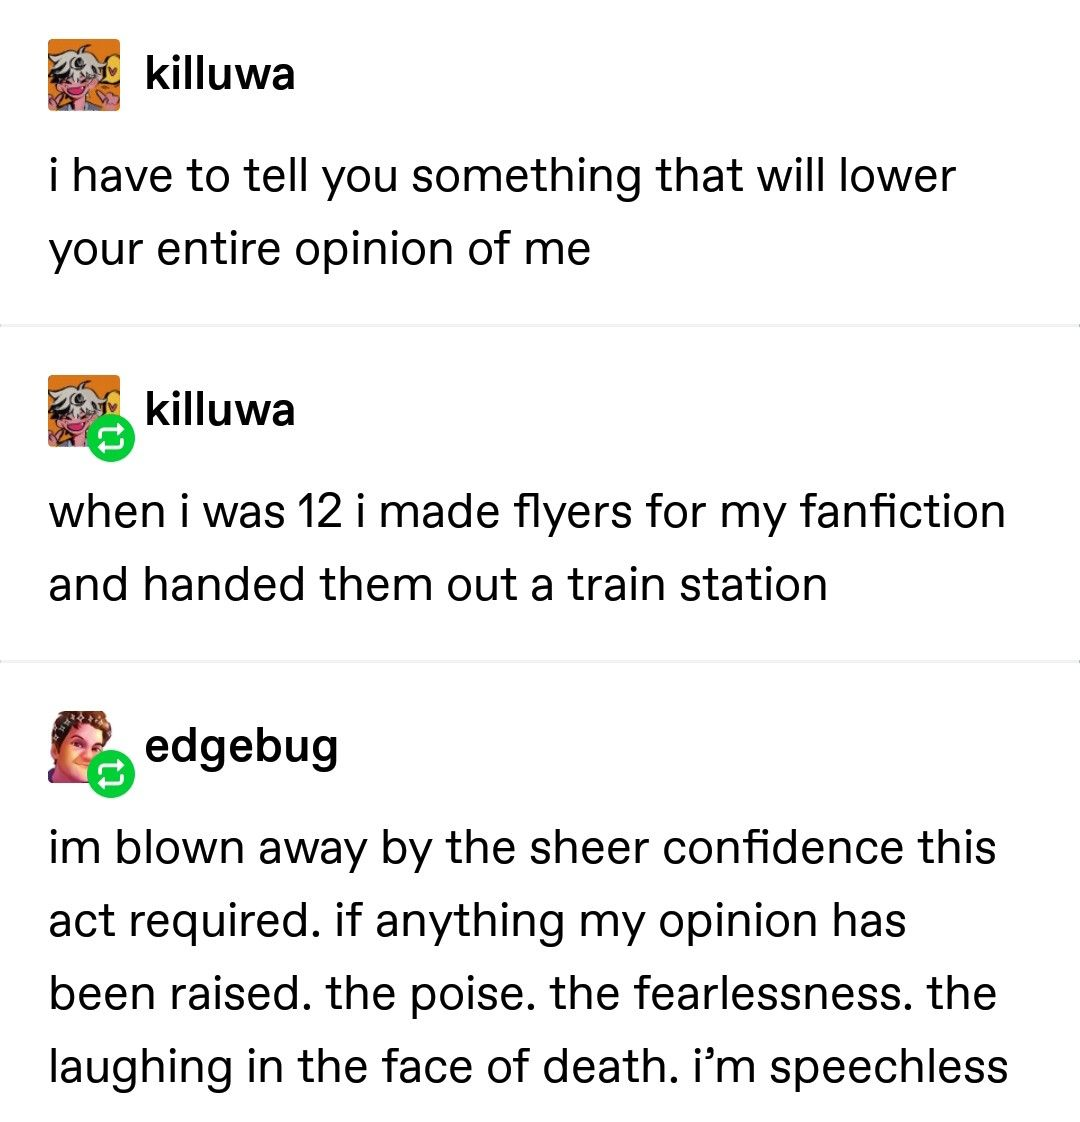 Wow The Sheer Bravery Of That Act I Don T Think I Could Ever Do That Funny Memes Tumblr Funny Funny Posts